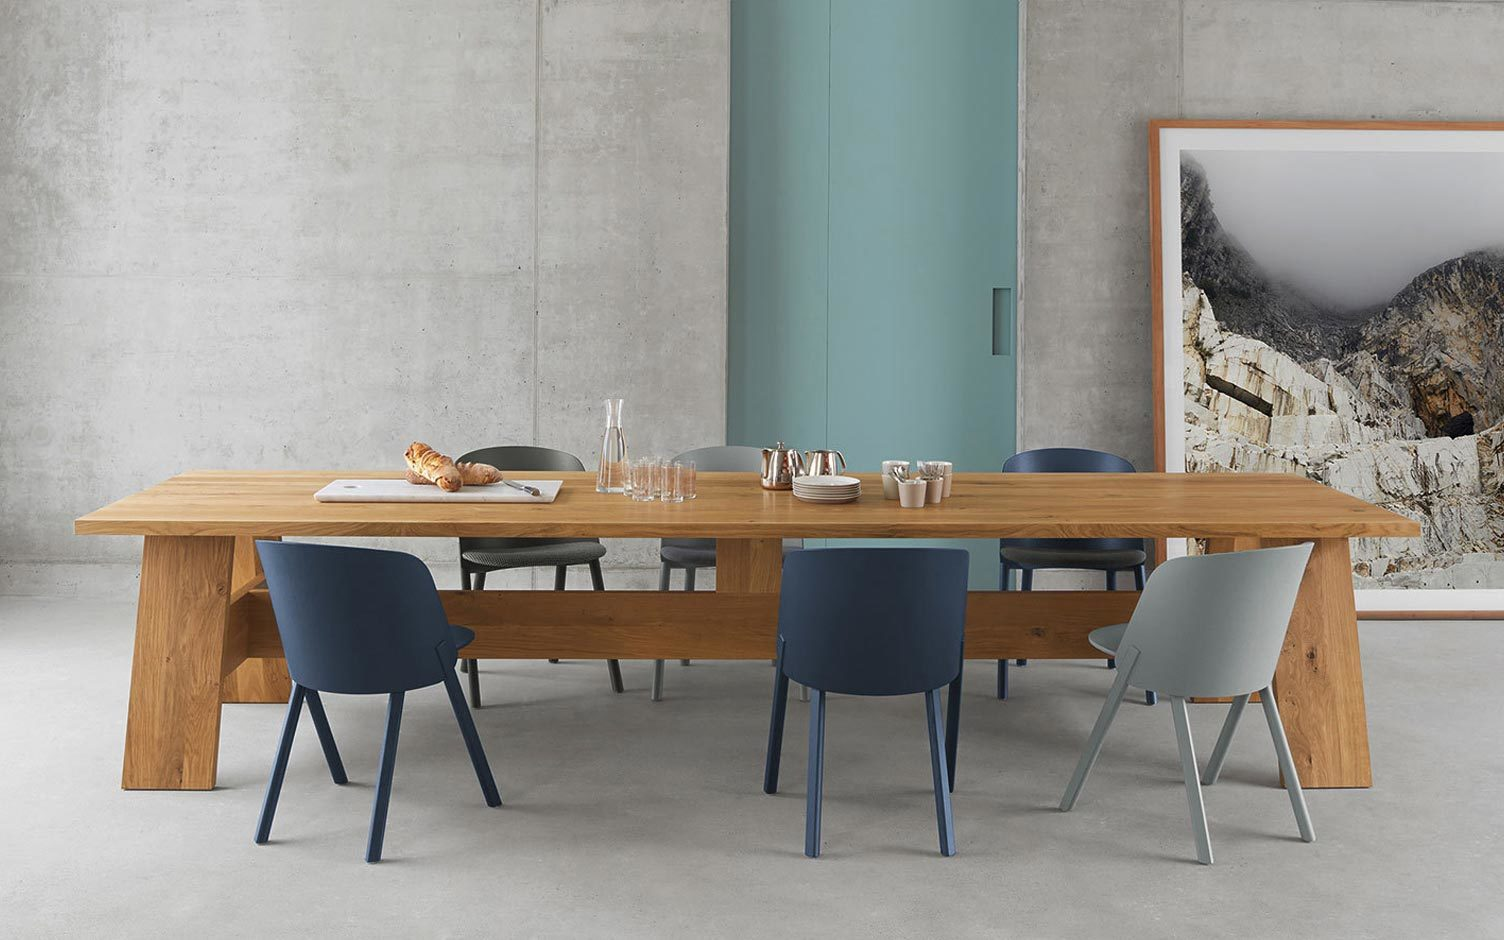 Dining Tables catalogue image